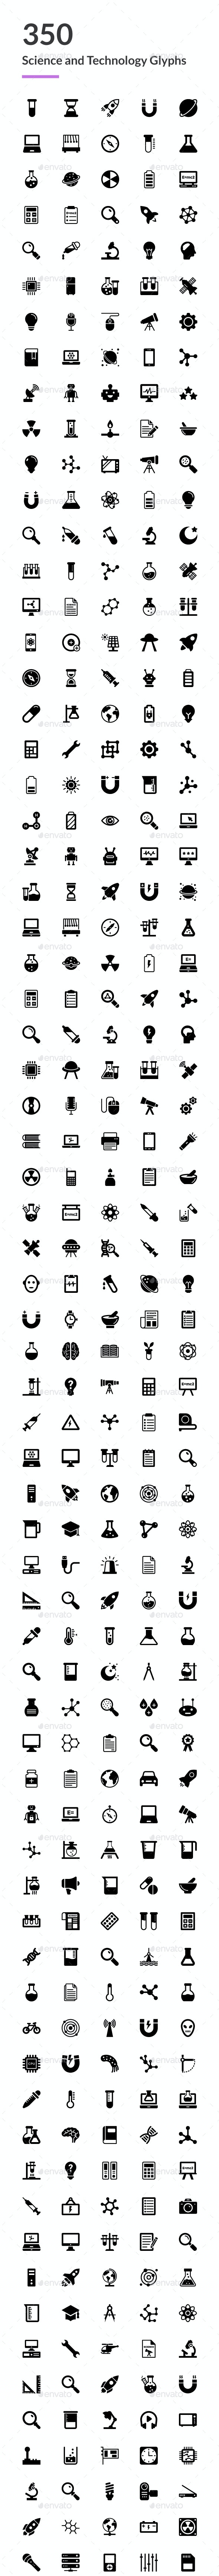 350 Science and Technology Icons - Icons